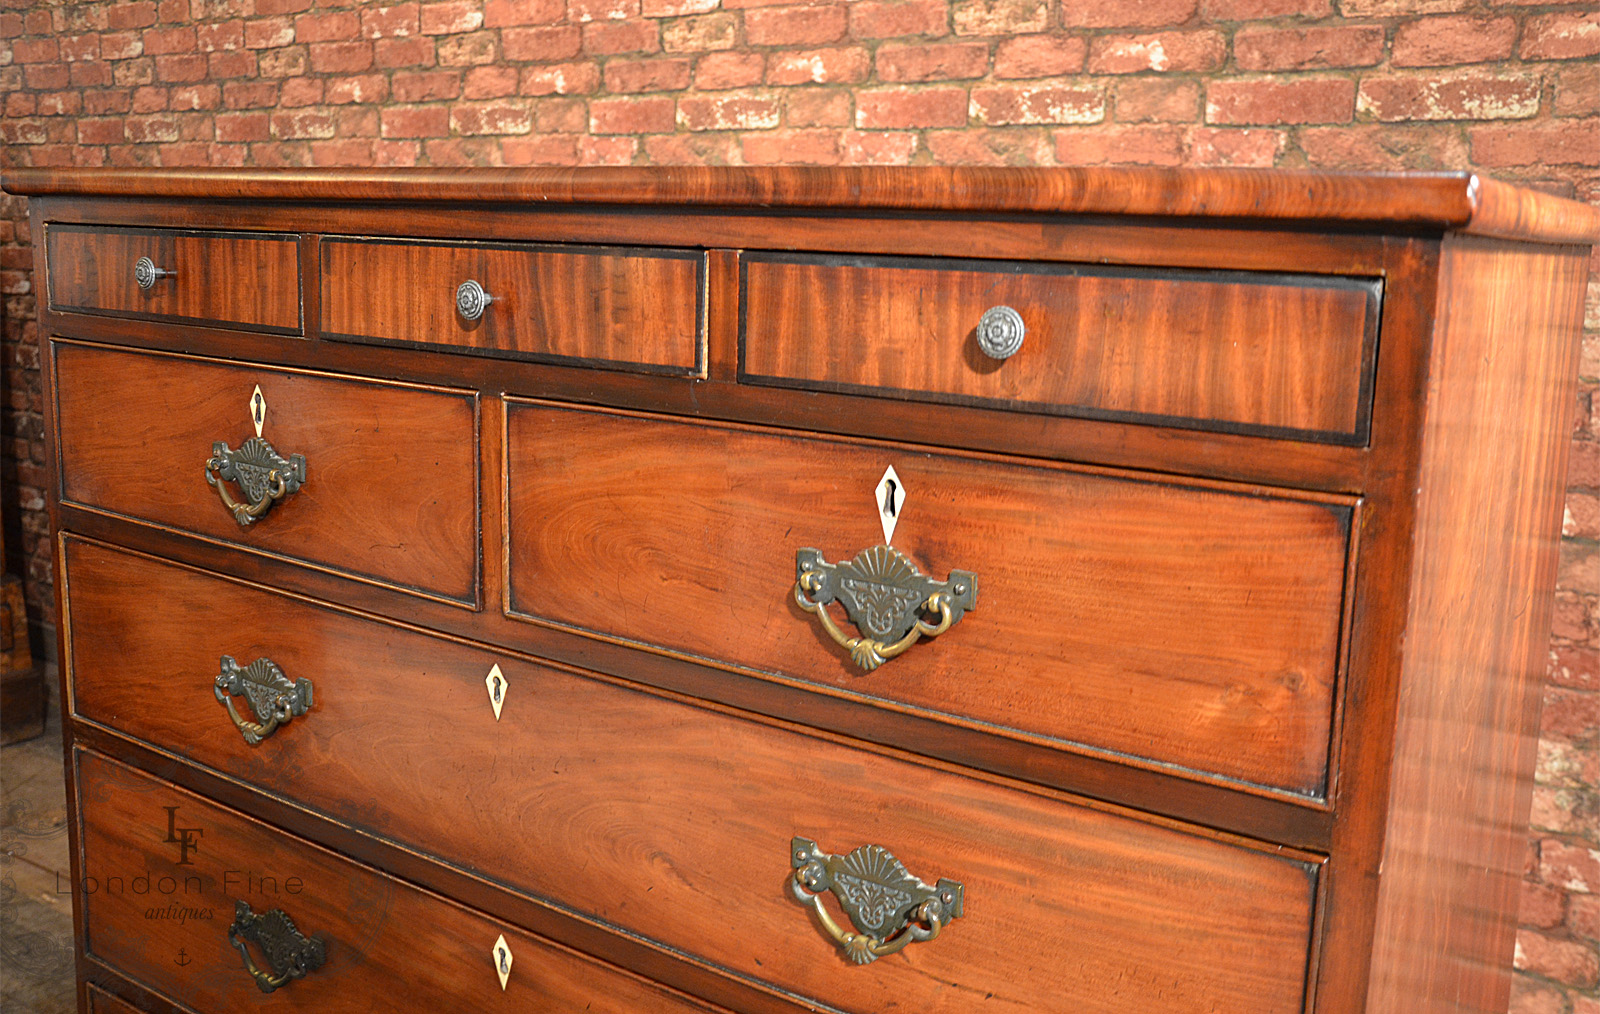 #B85913 Antique Chest Of Drawers Georgian English Tallboy Mahogany  with 1600x1014 px of Highly Rated Vintage Tallboy Chest Of Drawers 10141600 picture/photo @ avoidforclosure.info